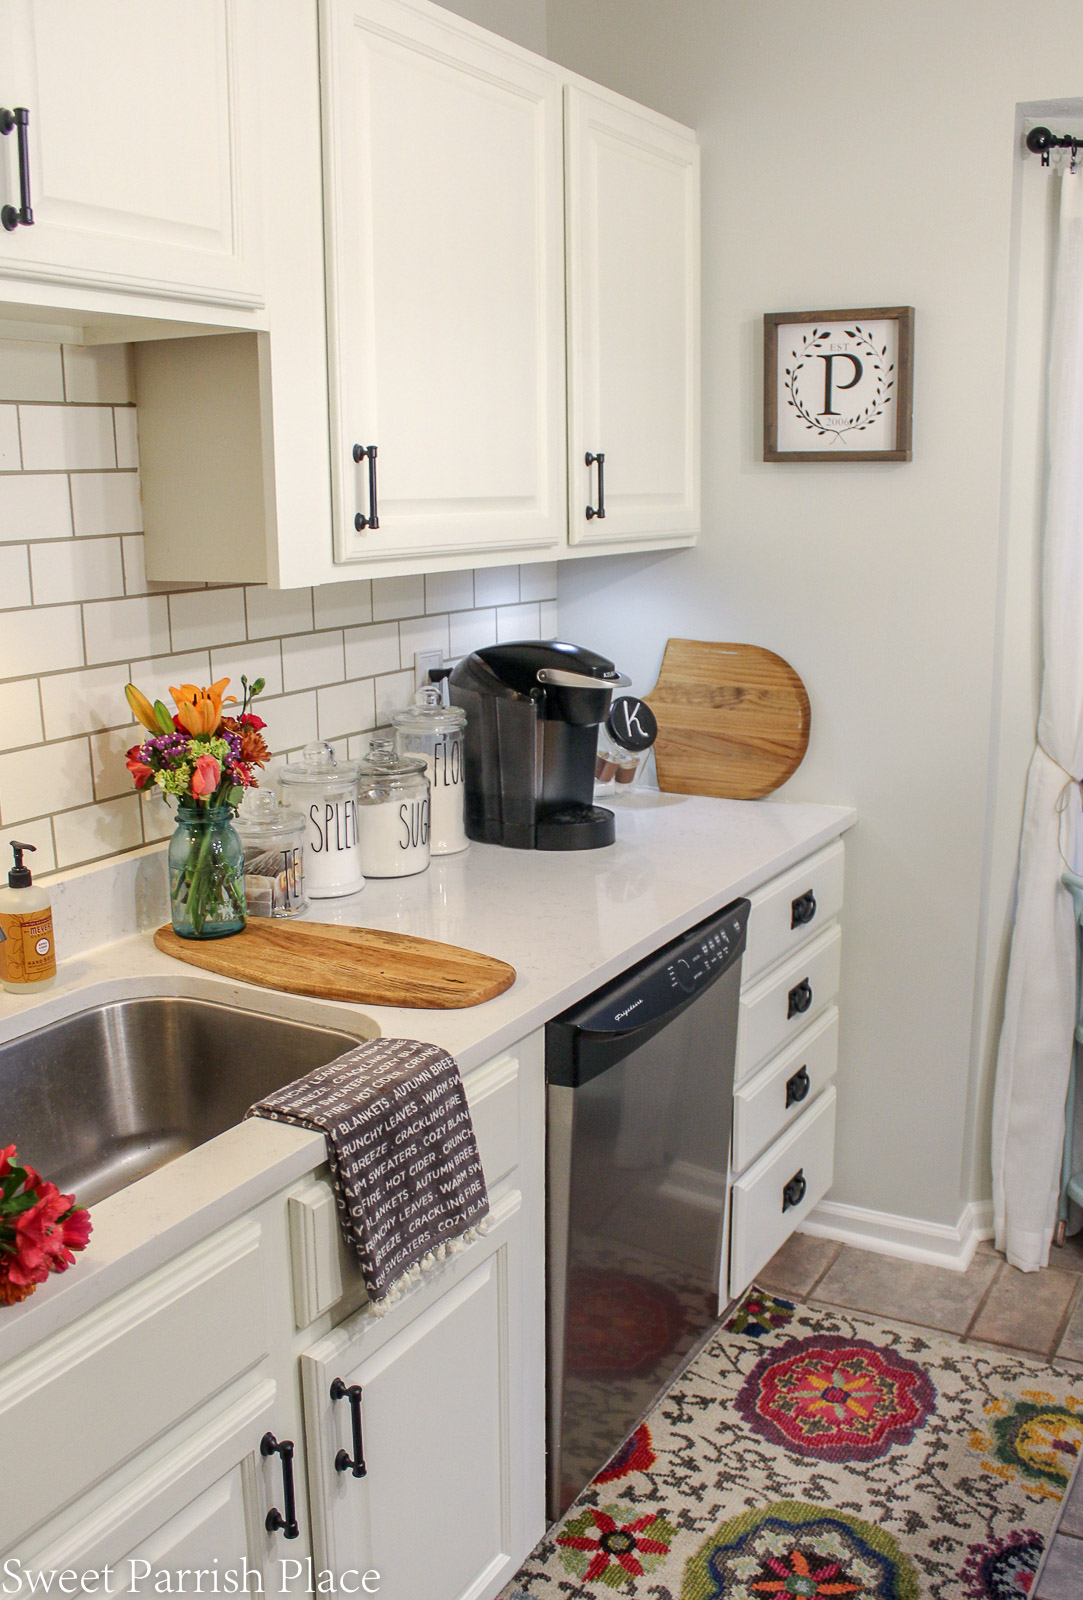 kitchen cabinets painted in simply white by Benjamin Moore